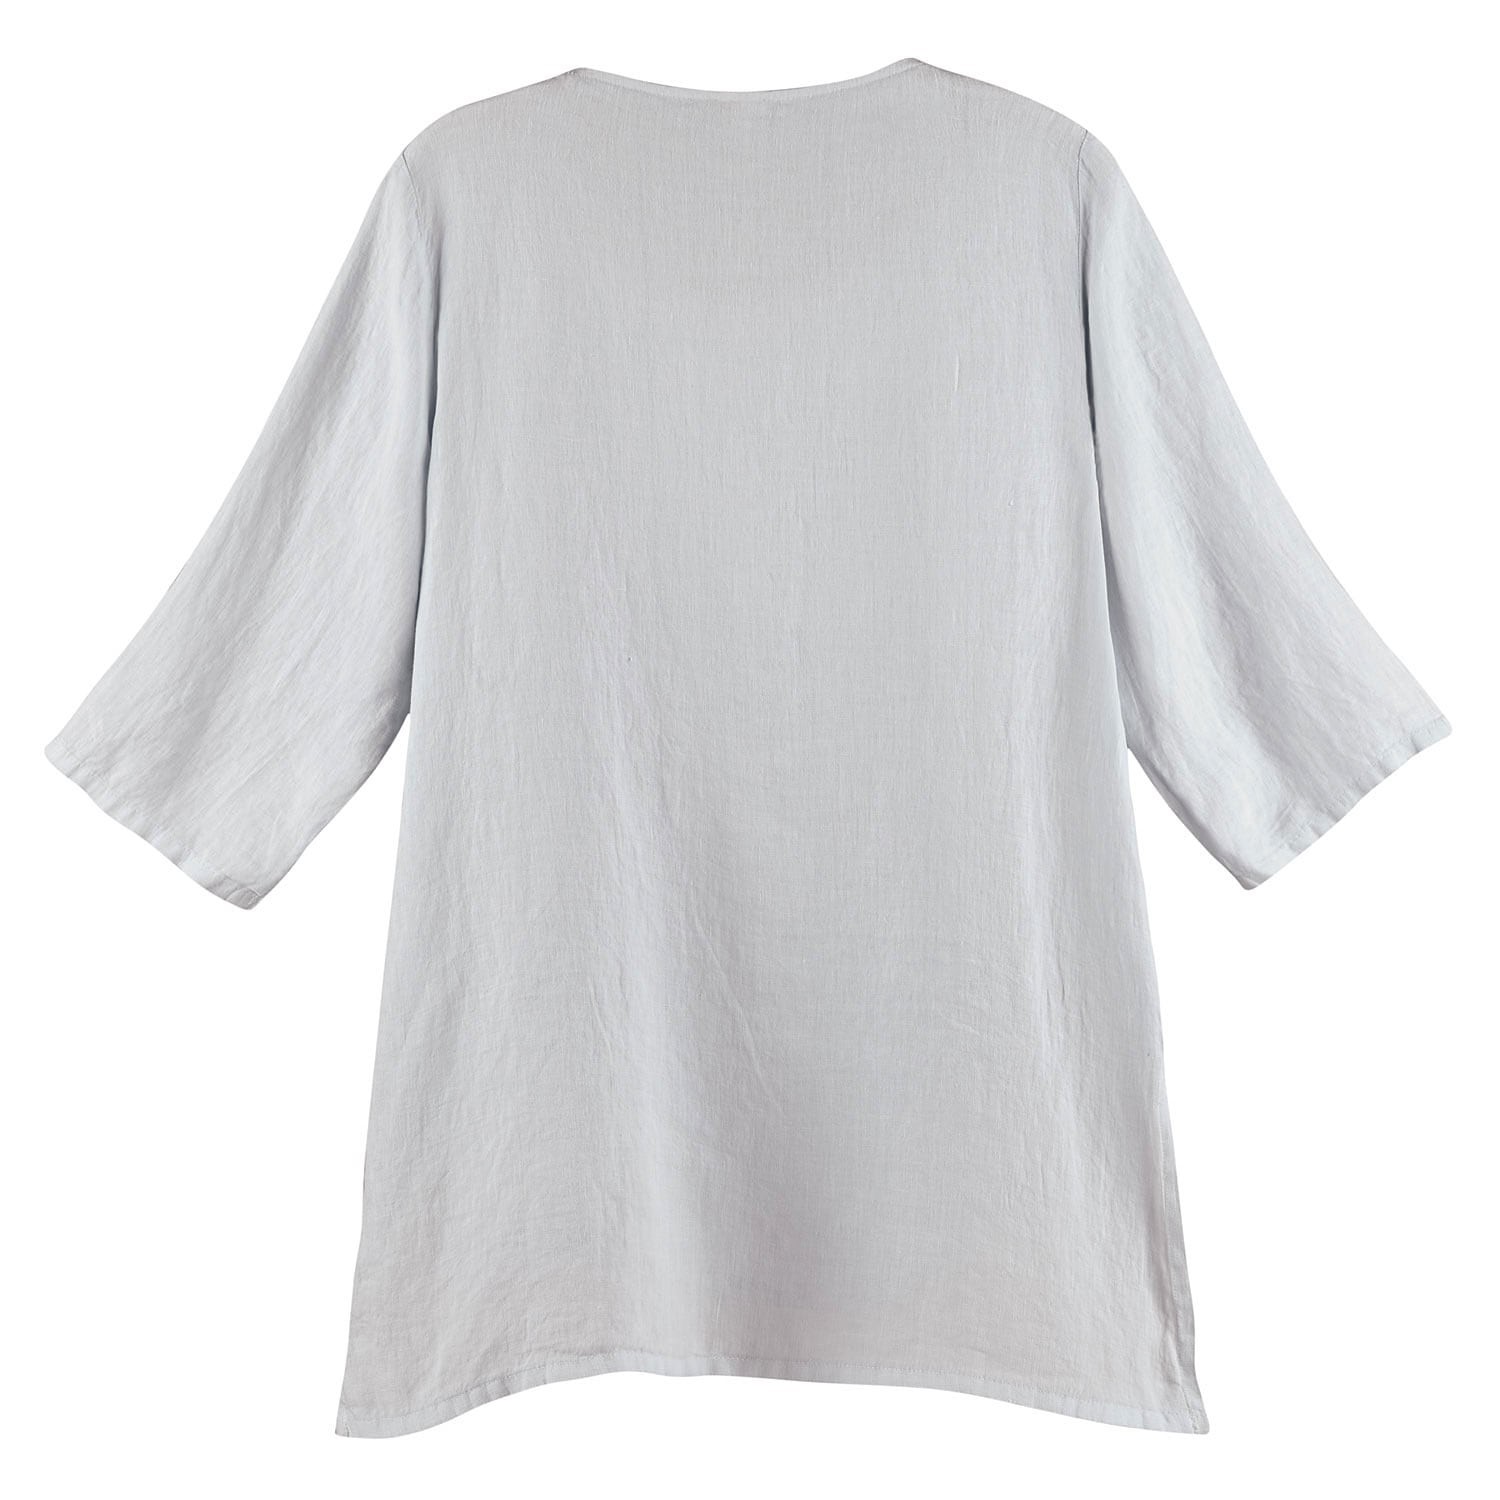 thumbnail 10 - Women's Tunic Top - Long Layered Linen Blouse with 3/4 Sleeves